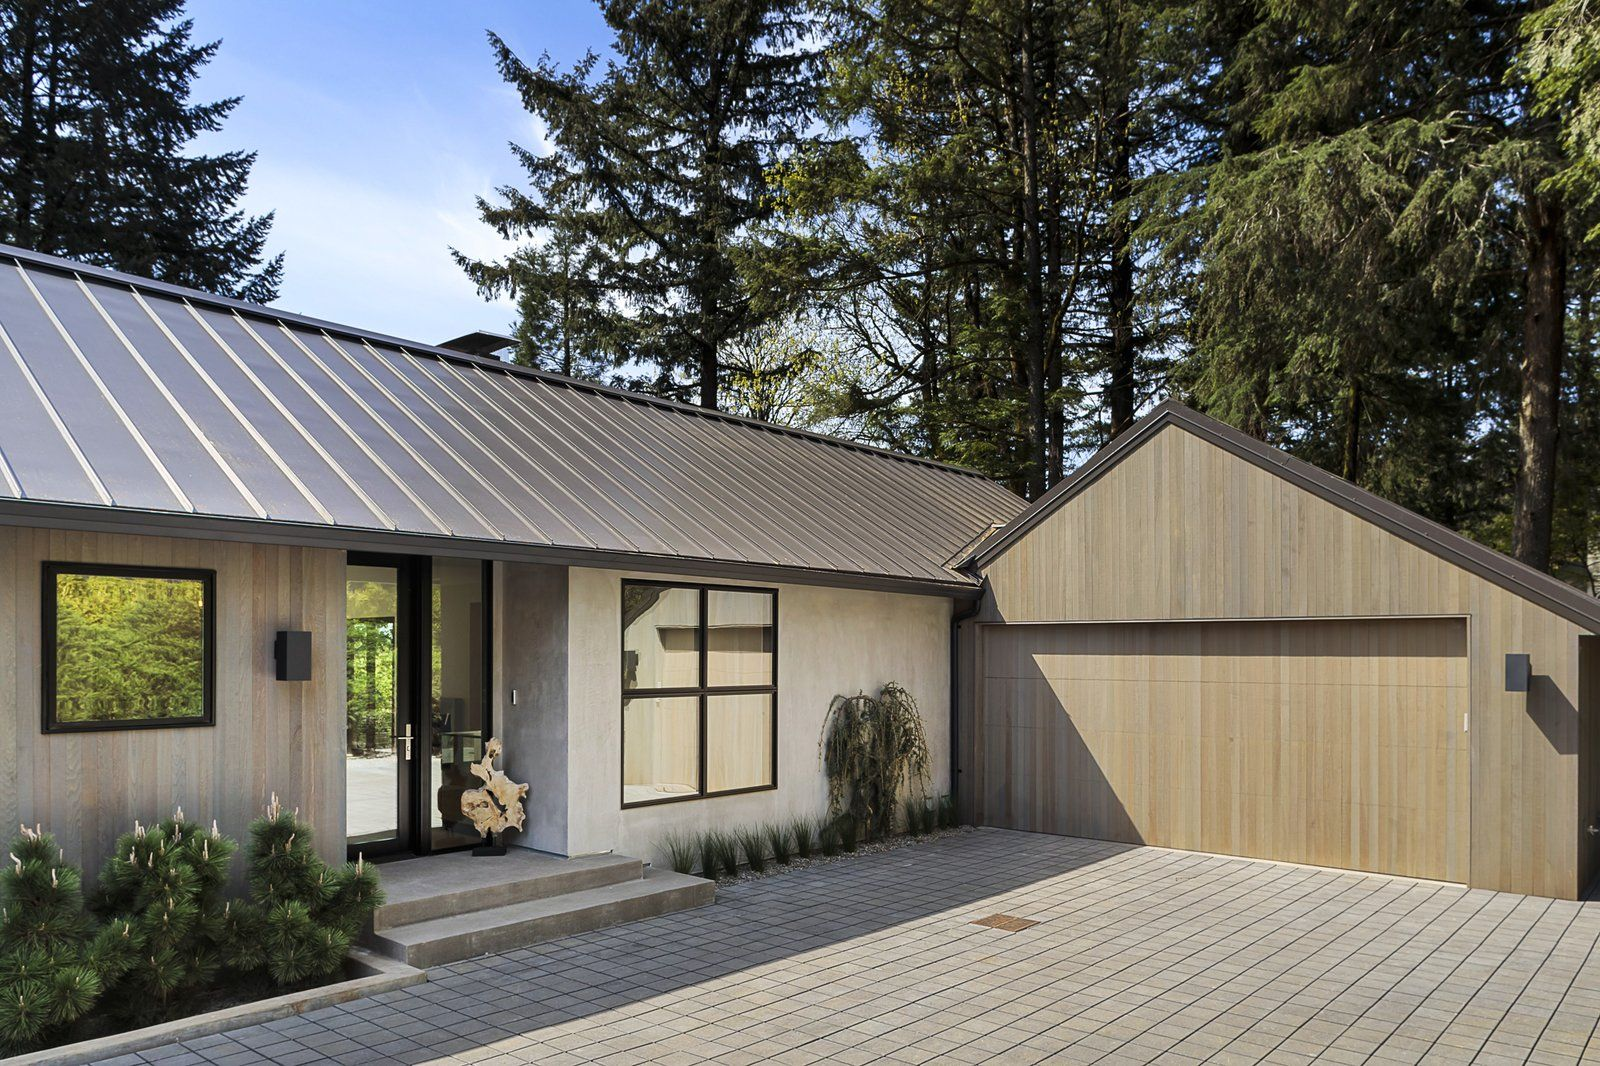 Exterior Concrete Siding Material Metal Roof Material House Building Type And Wood Siding Material Photo 339 Of 3 Roof Architecture Architecture House Roof